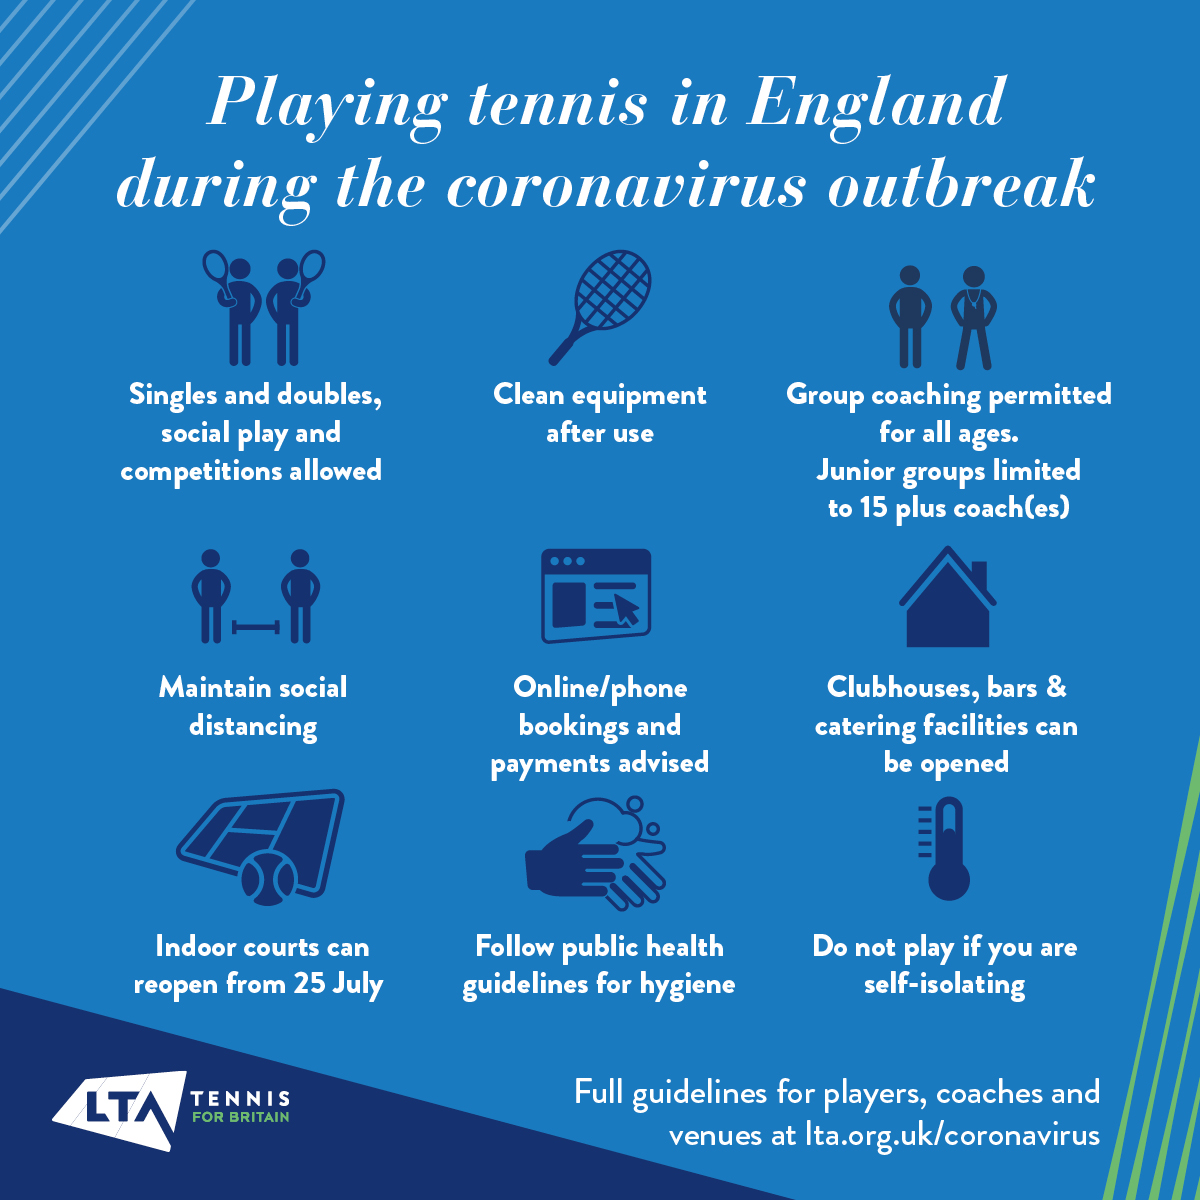 Playing tennis in England during coronavirus outbreak